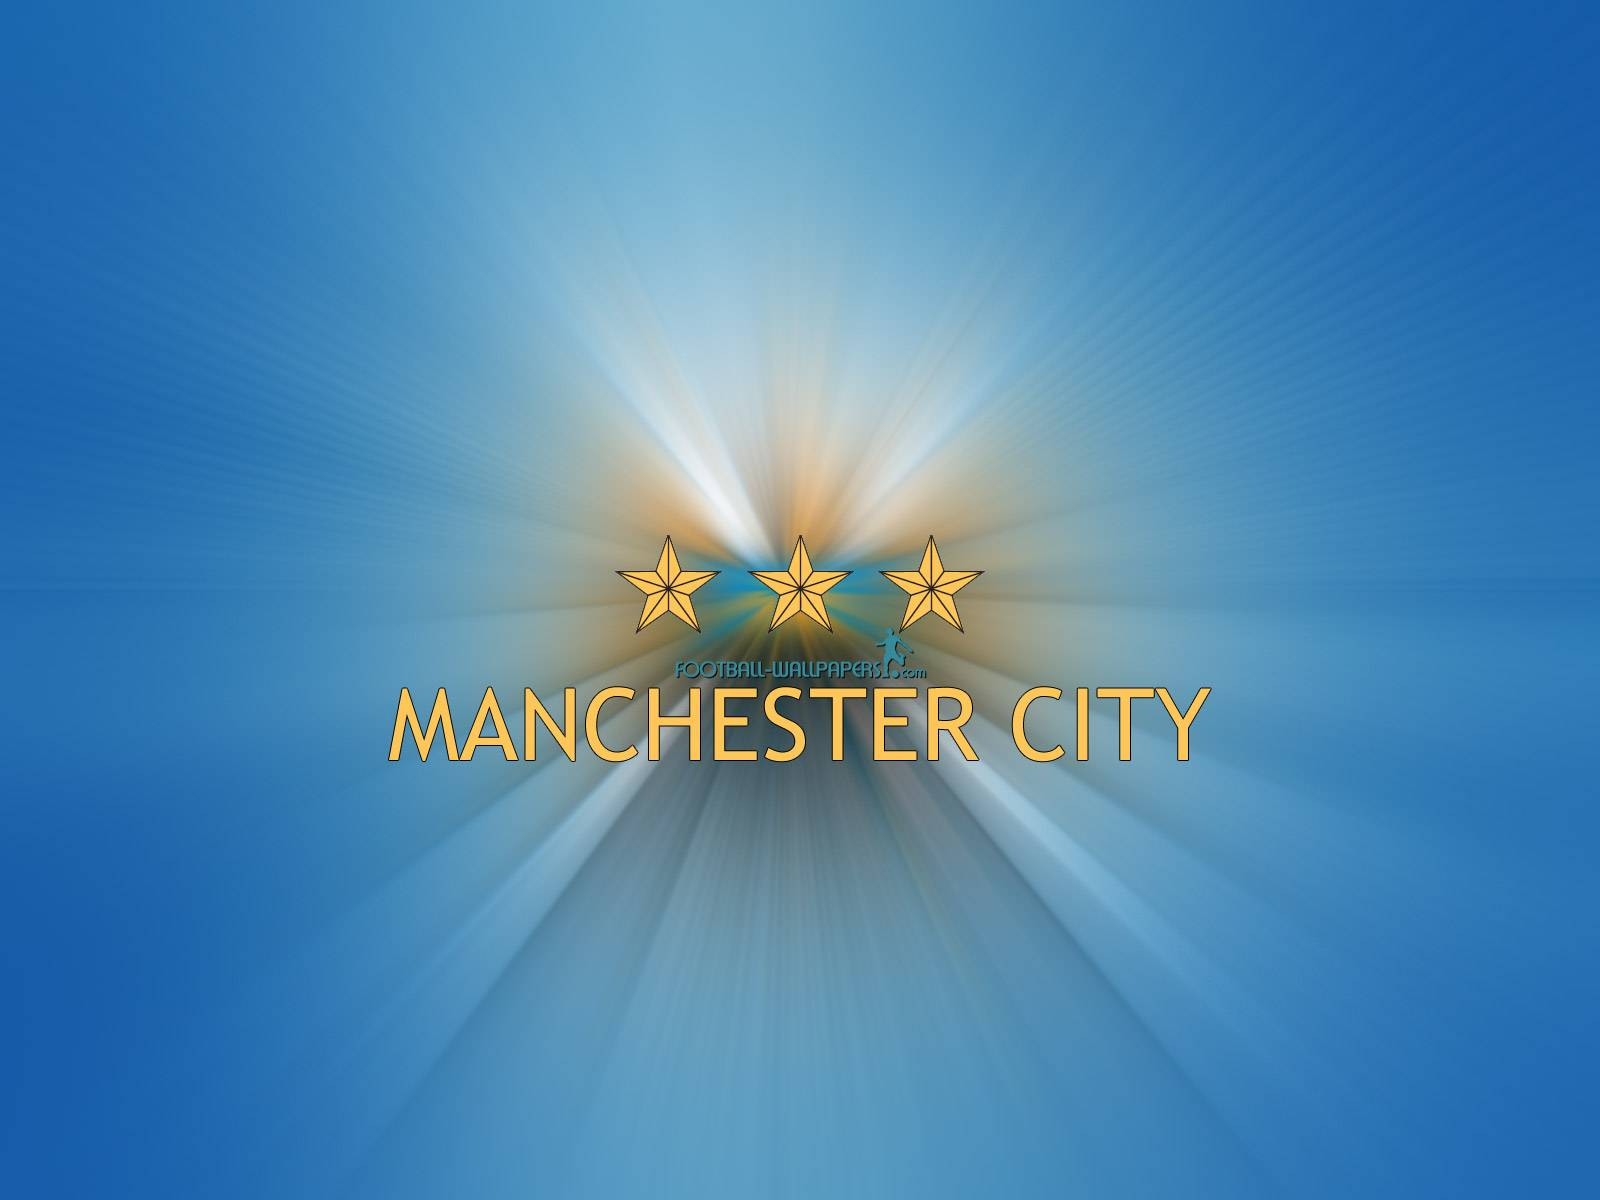 Manchester City Fc Wallpaper: All Wallpapers: Manchester City Football Club Wallpapers